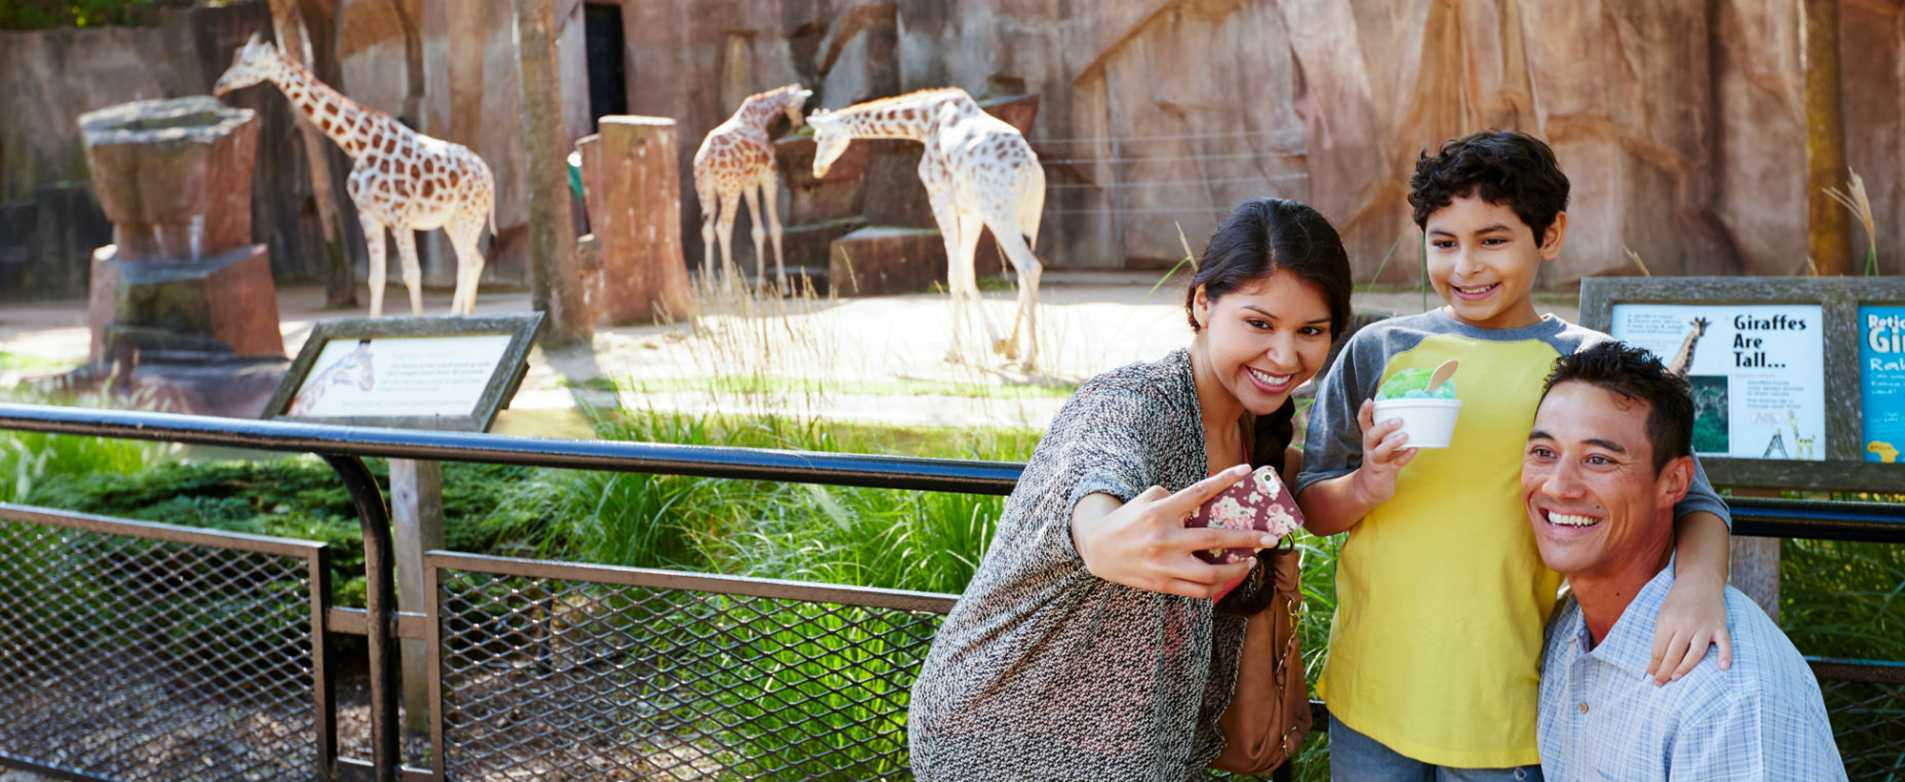 Family Taking Selfie by Giraffe Exhibit at Milwaukee County Zoo